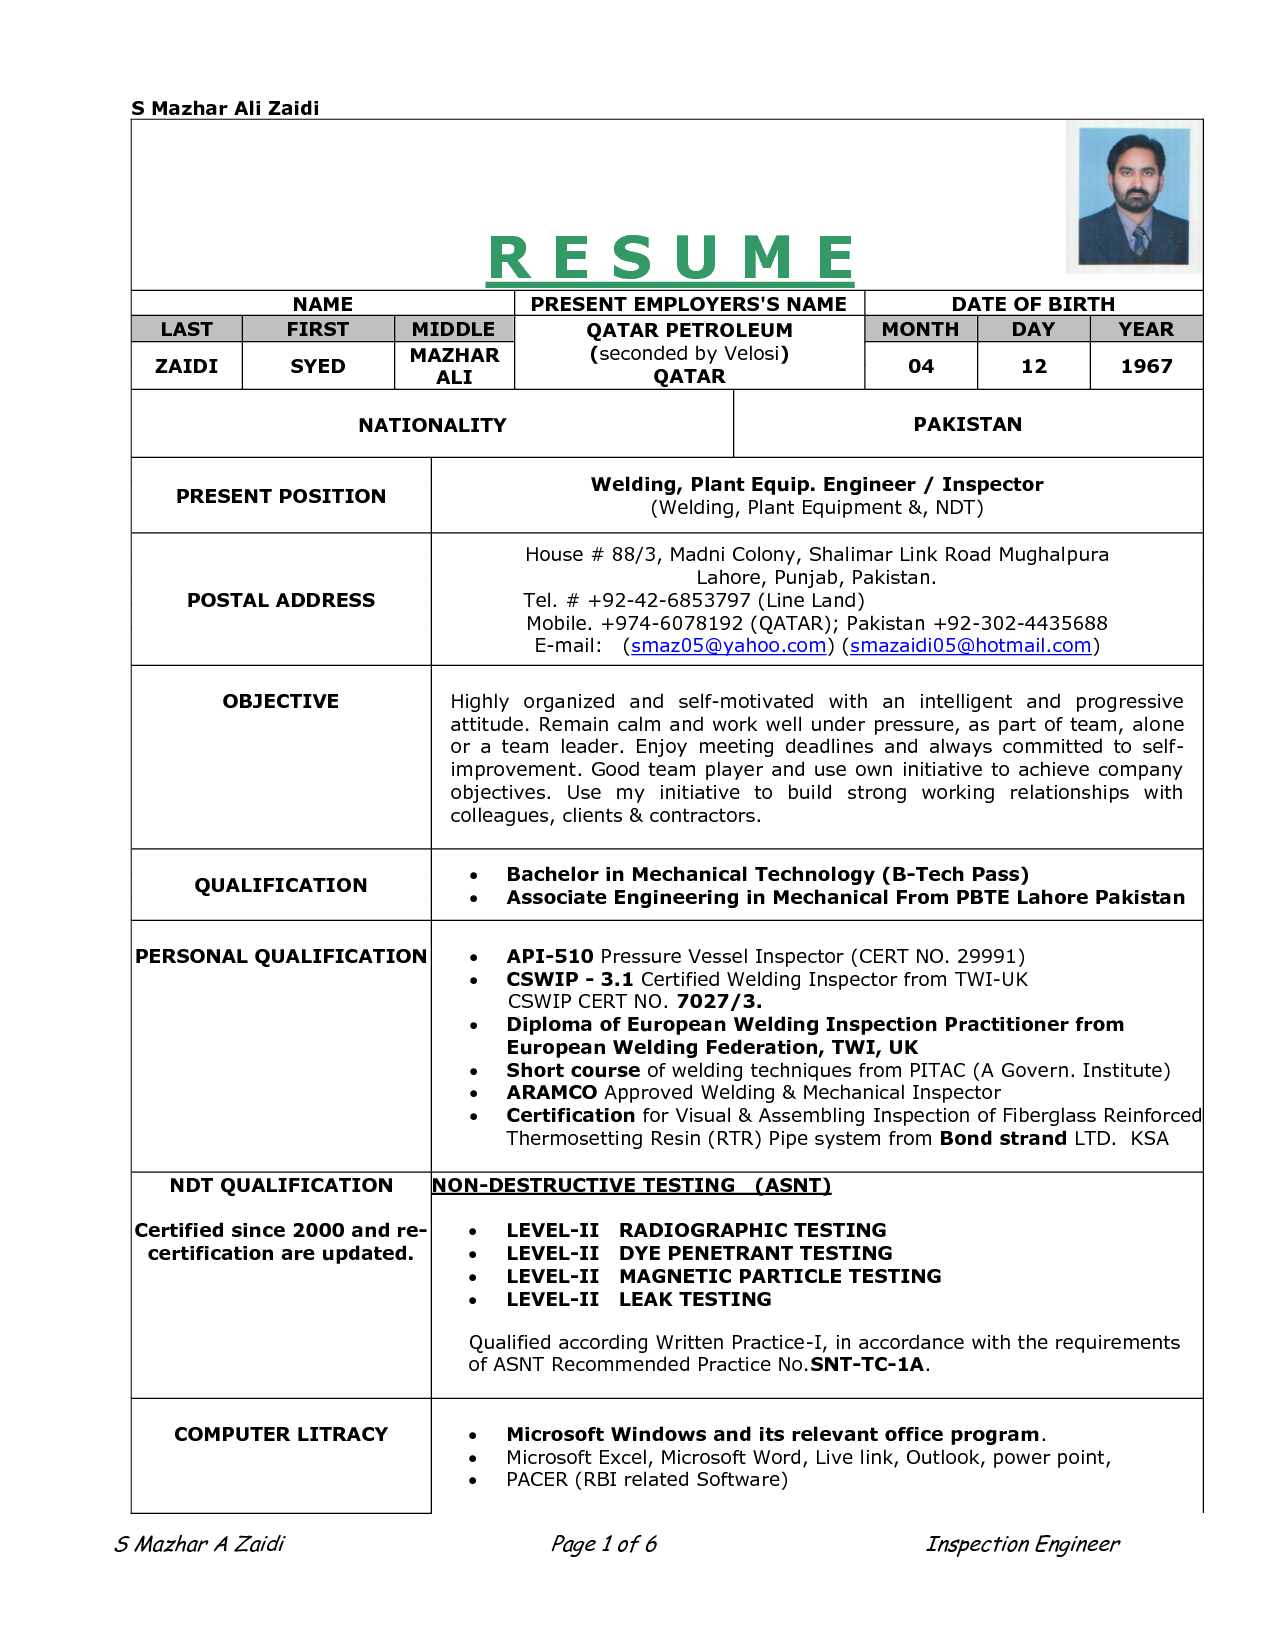 Re Work Procedure Resume.doc Download Legal Documents Re Work Procedure  Resume Document Sample